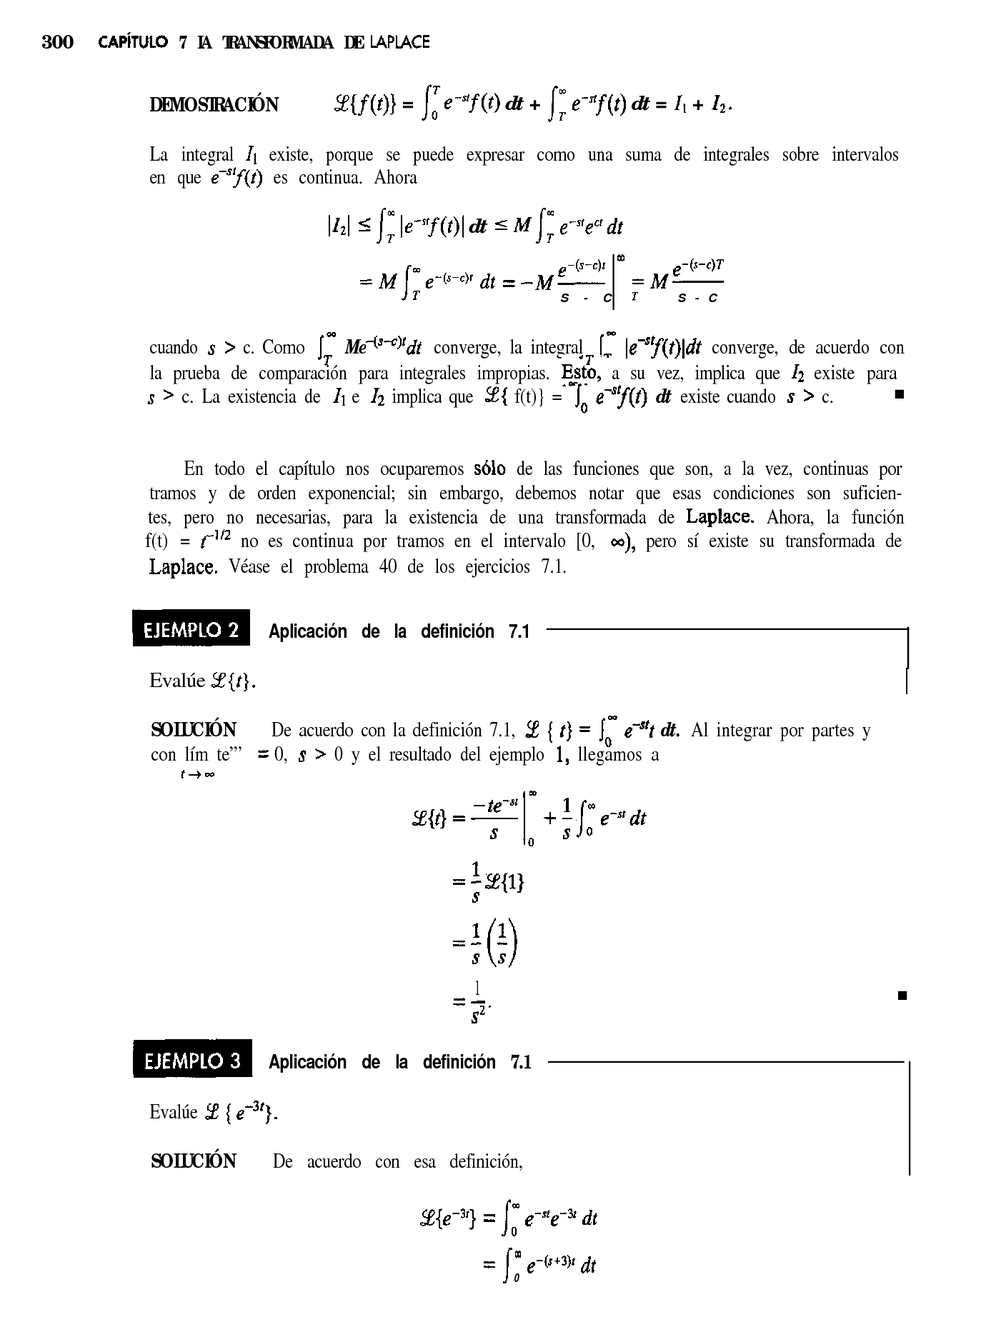 Page 311